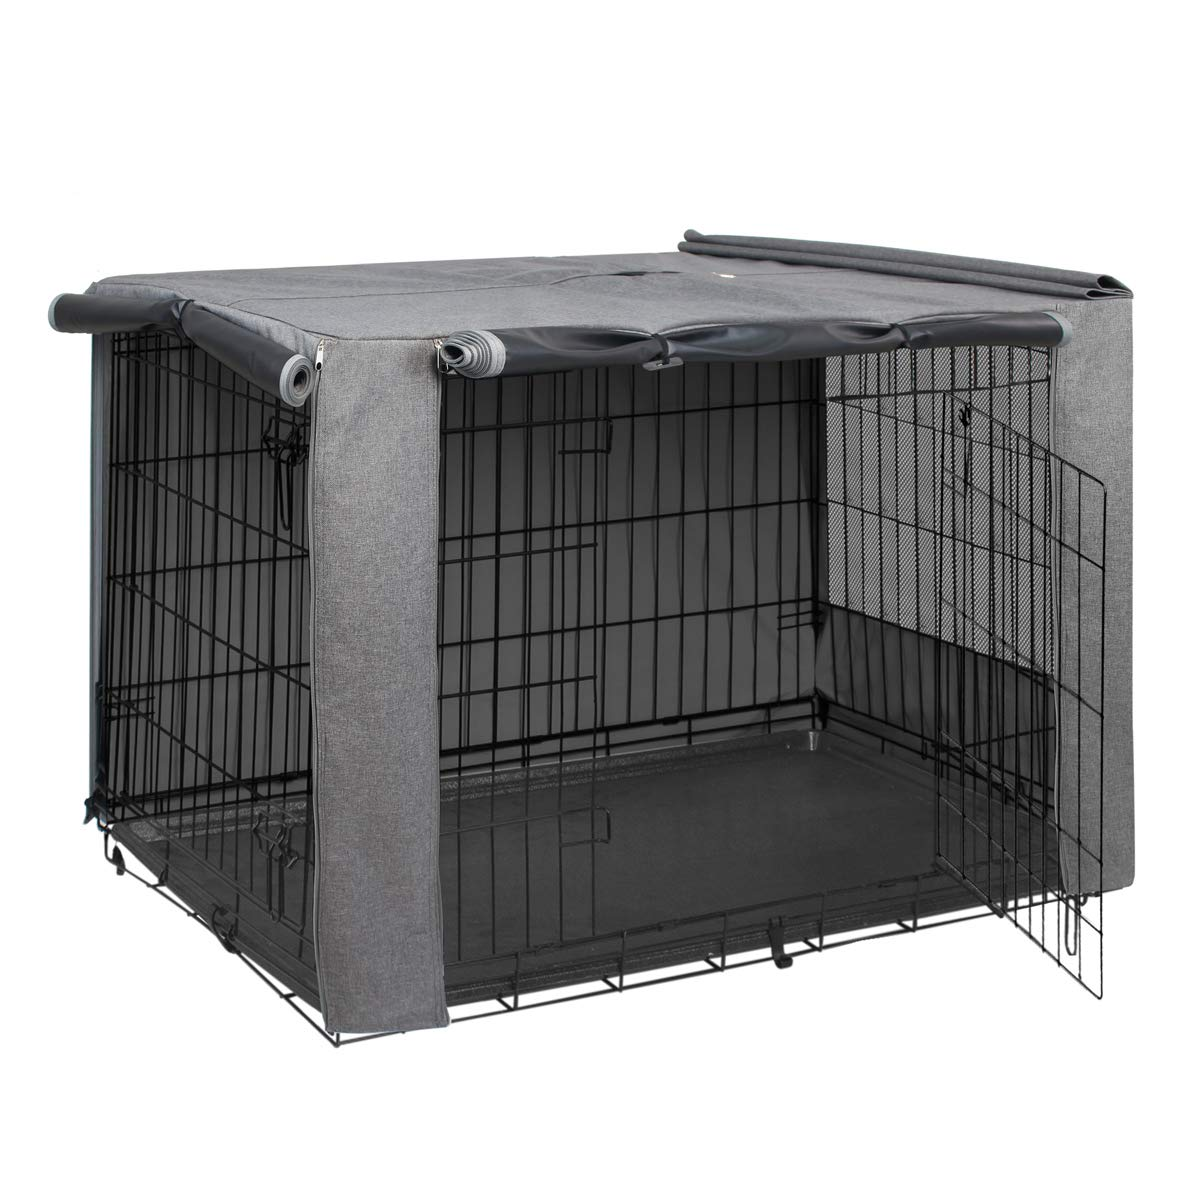 HiCaptain Double Door Dog Crate Cover(Fits 24 30 36 42 48 inches Wire Crate)